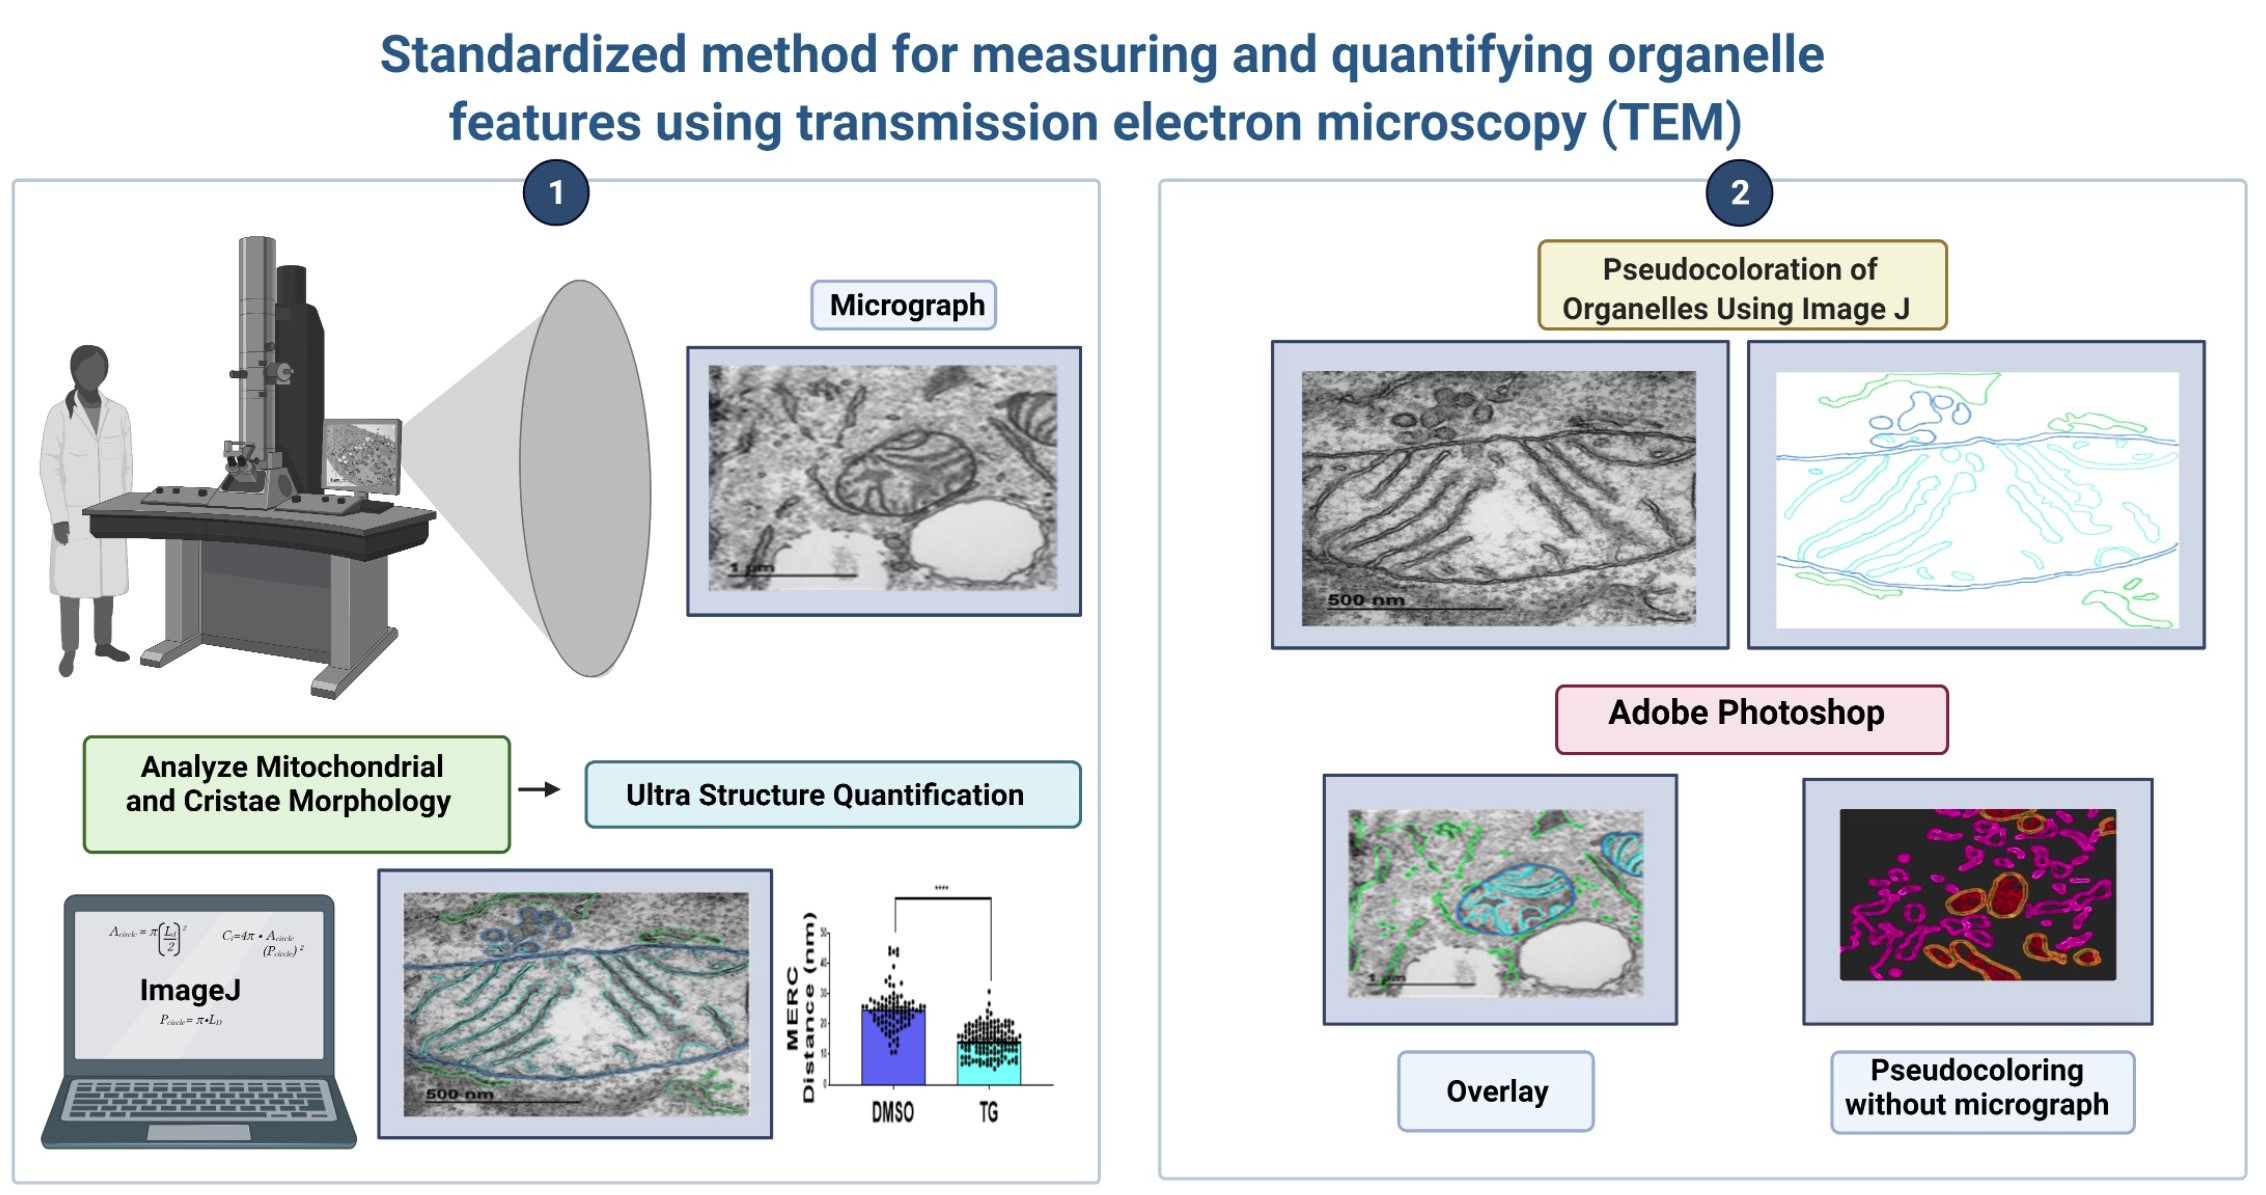 Graphic of standardized method for measuring and quantifying organelle features using transmission electron microscopy.